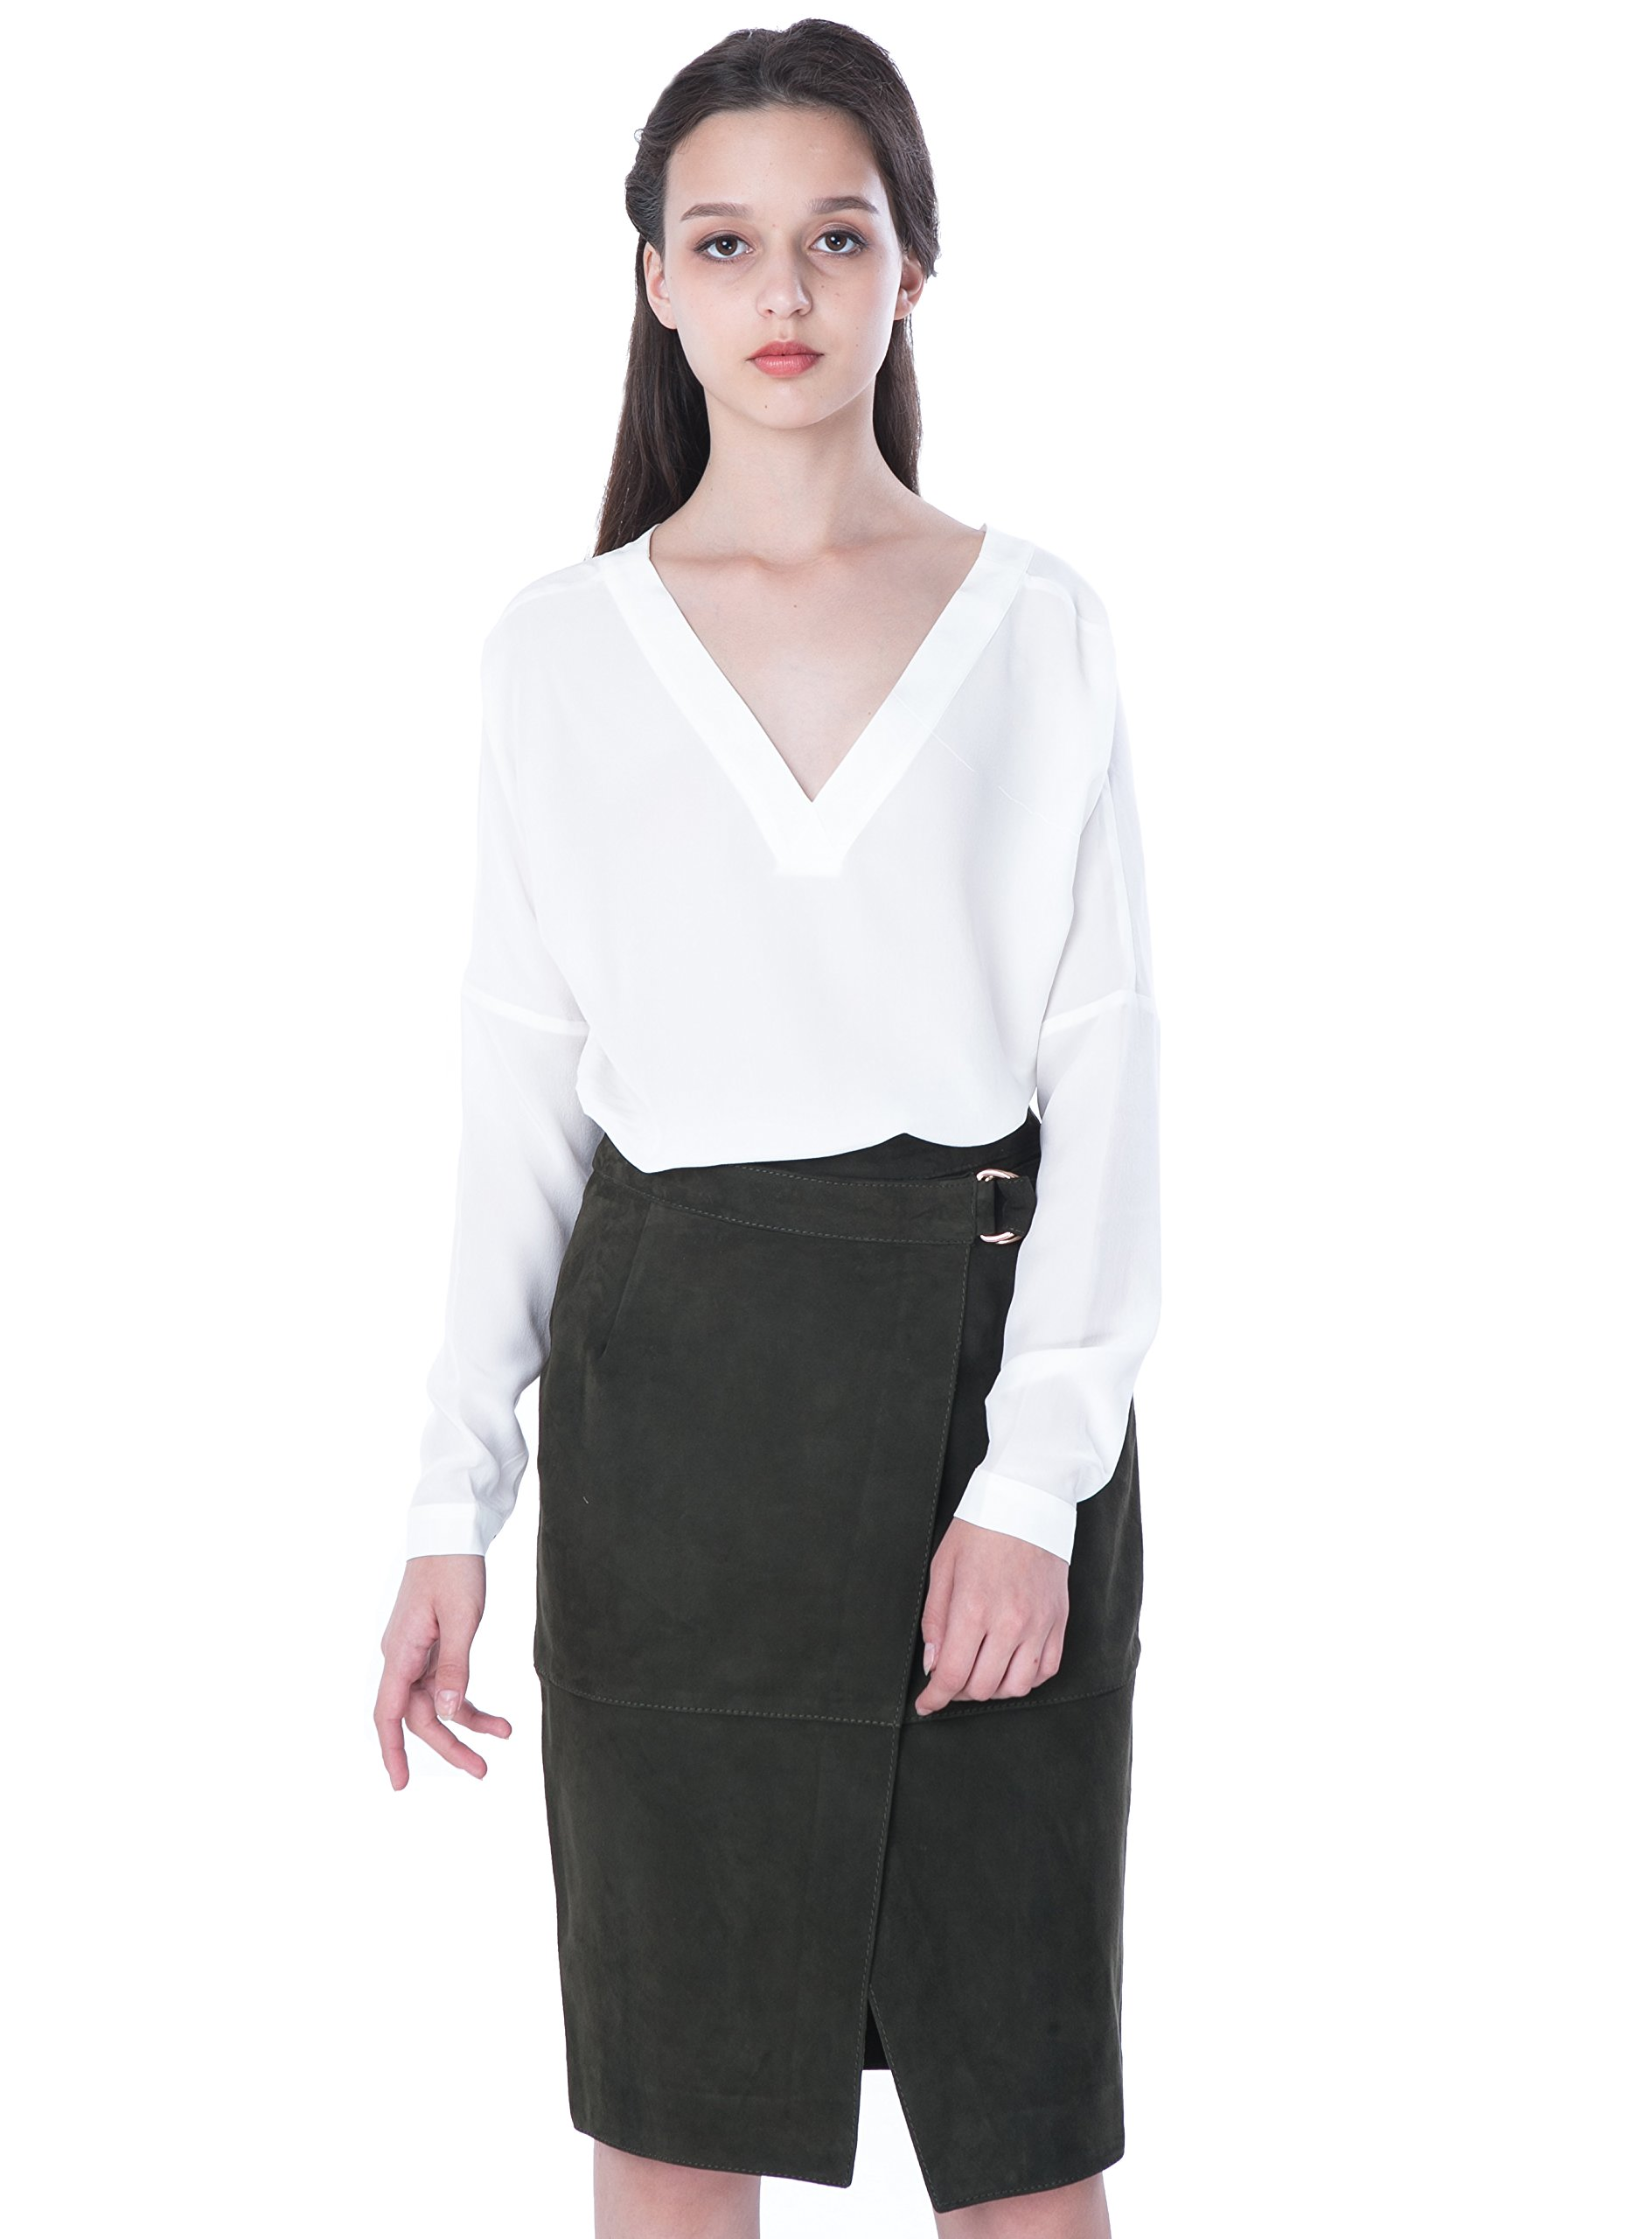 PHILIPPE LE BAC Women's Leather Midi Pencil Skirt for Office Wear